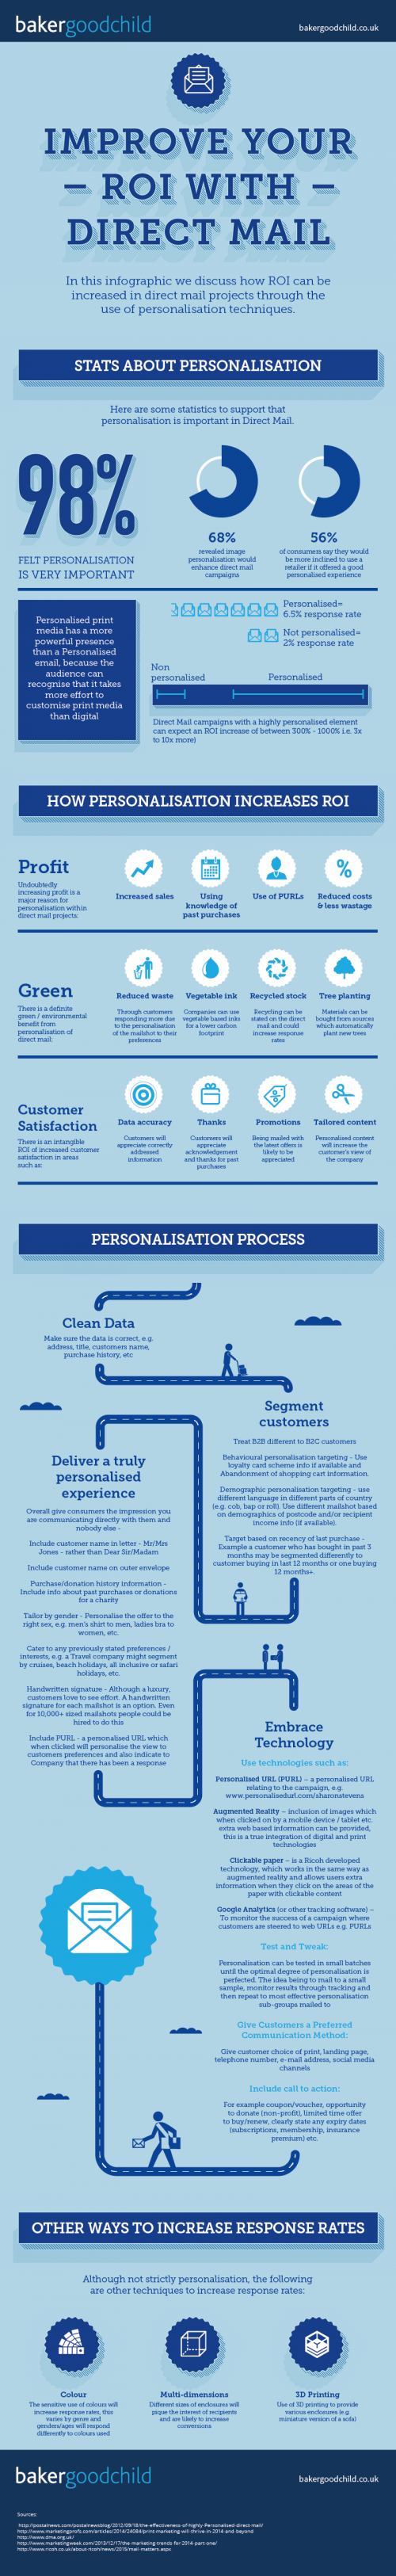 Improve ROI with Direct Mail Personalisation infographic'